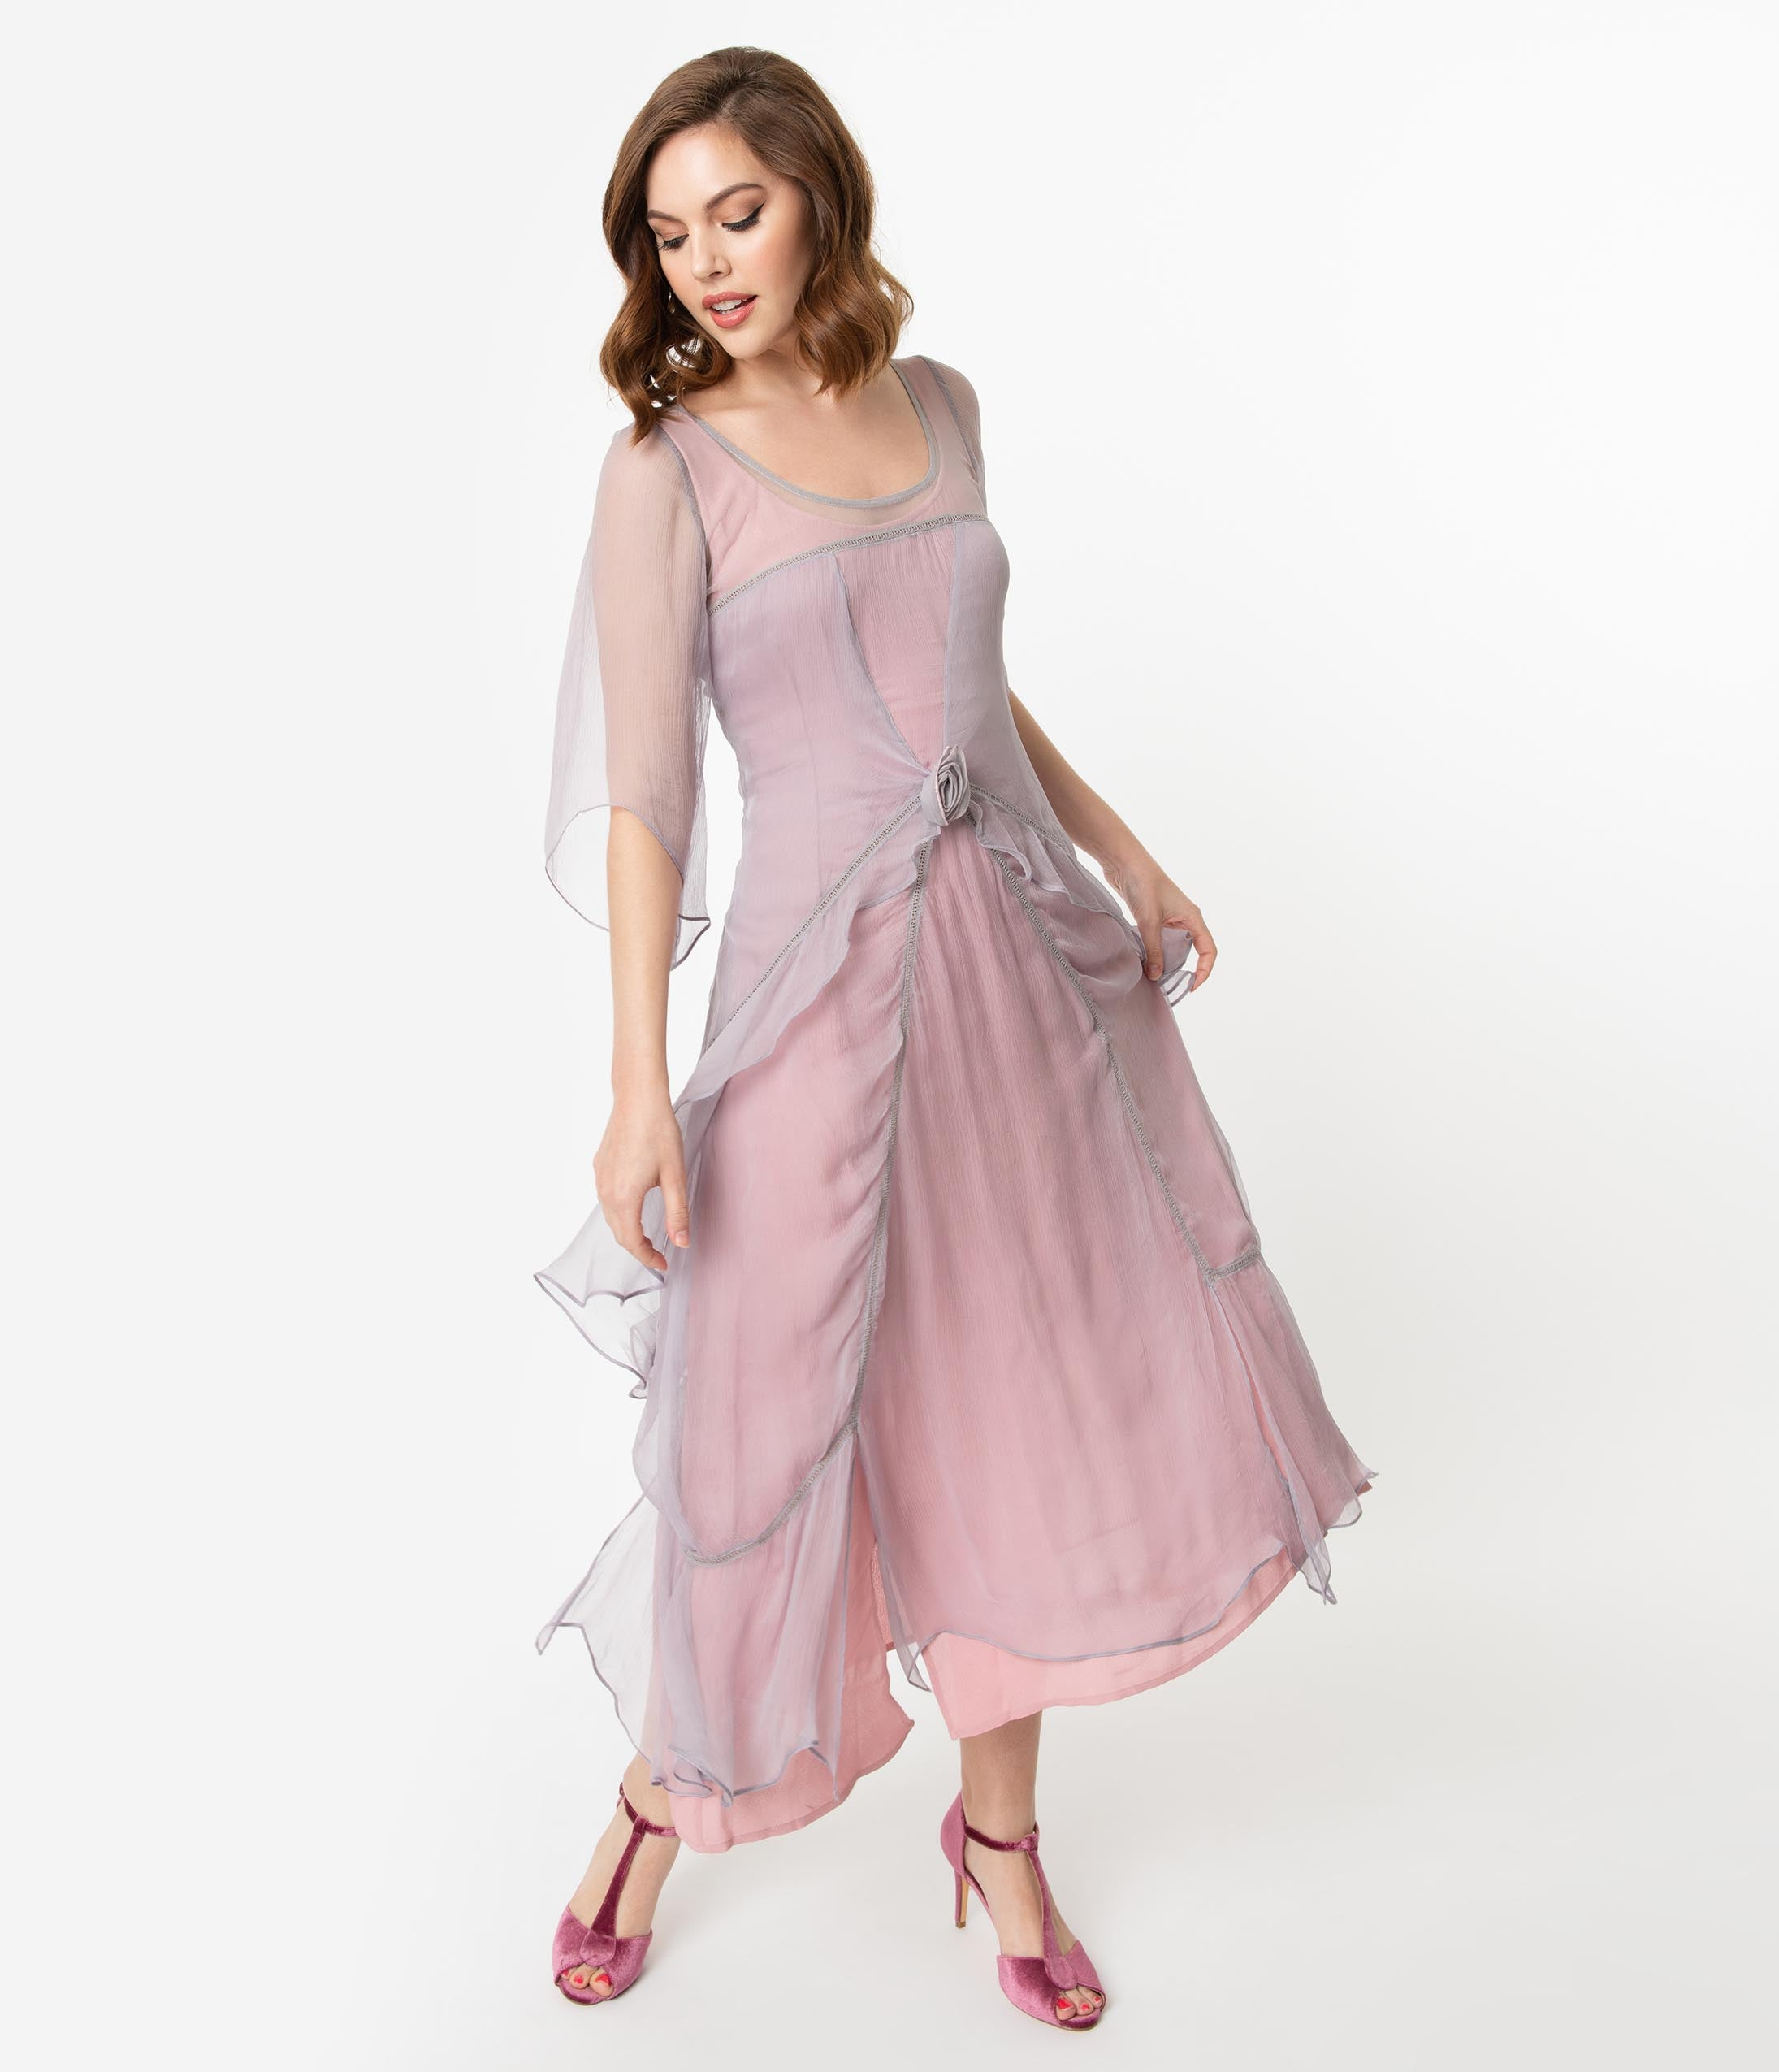 1920s Evening Dresses & Formal Gowns Vintage Style Mauve  Pink Chiffon Sleeved Edwardian Flapper Dress $228.00 AT vintagedancer.com